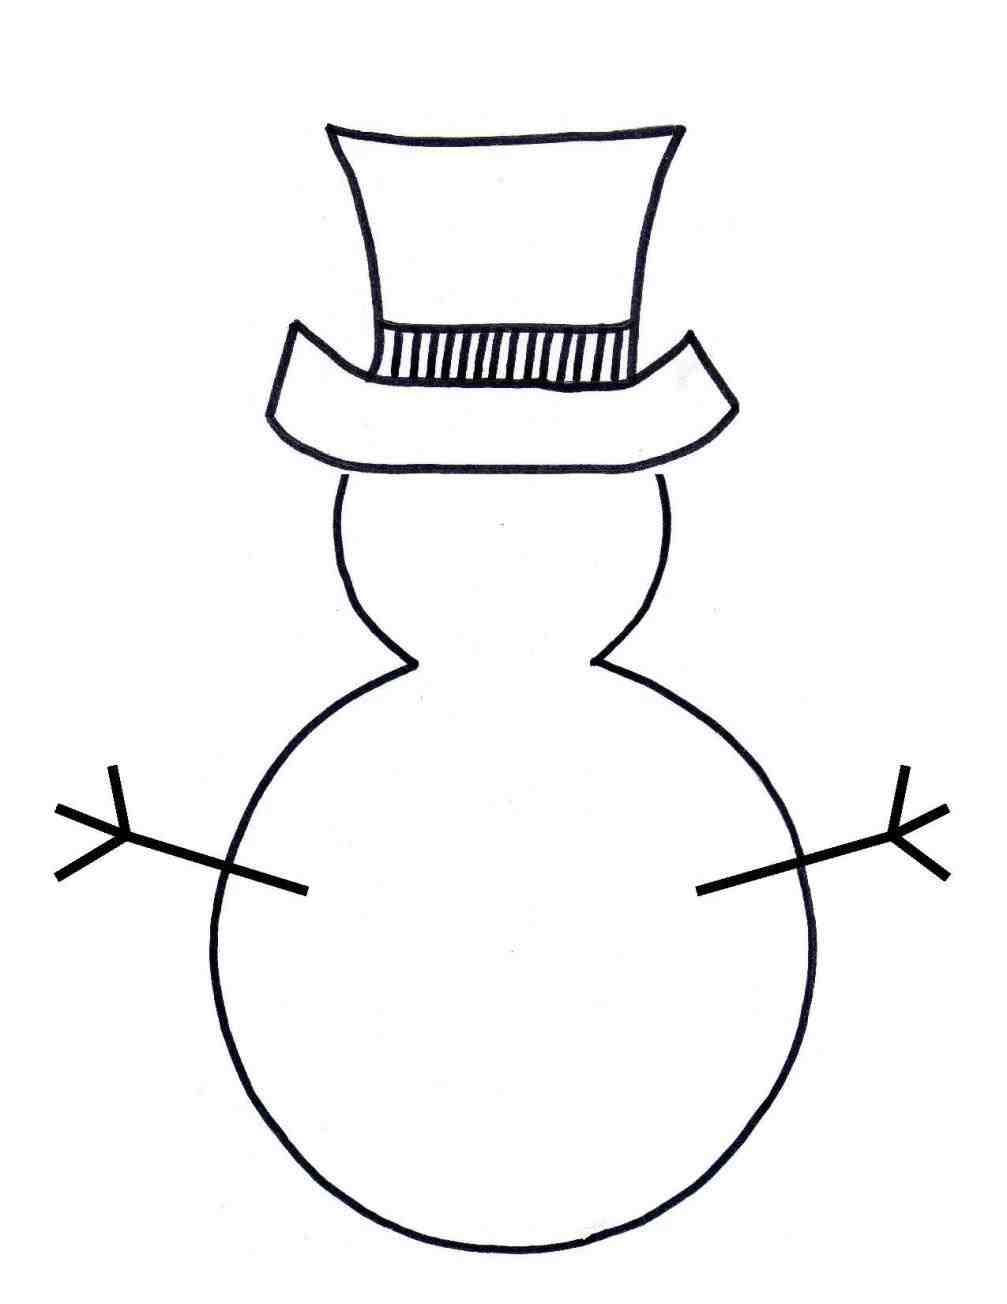 1007x1304 Christmas Snowman Clipart Black And White Lights Decoration Print